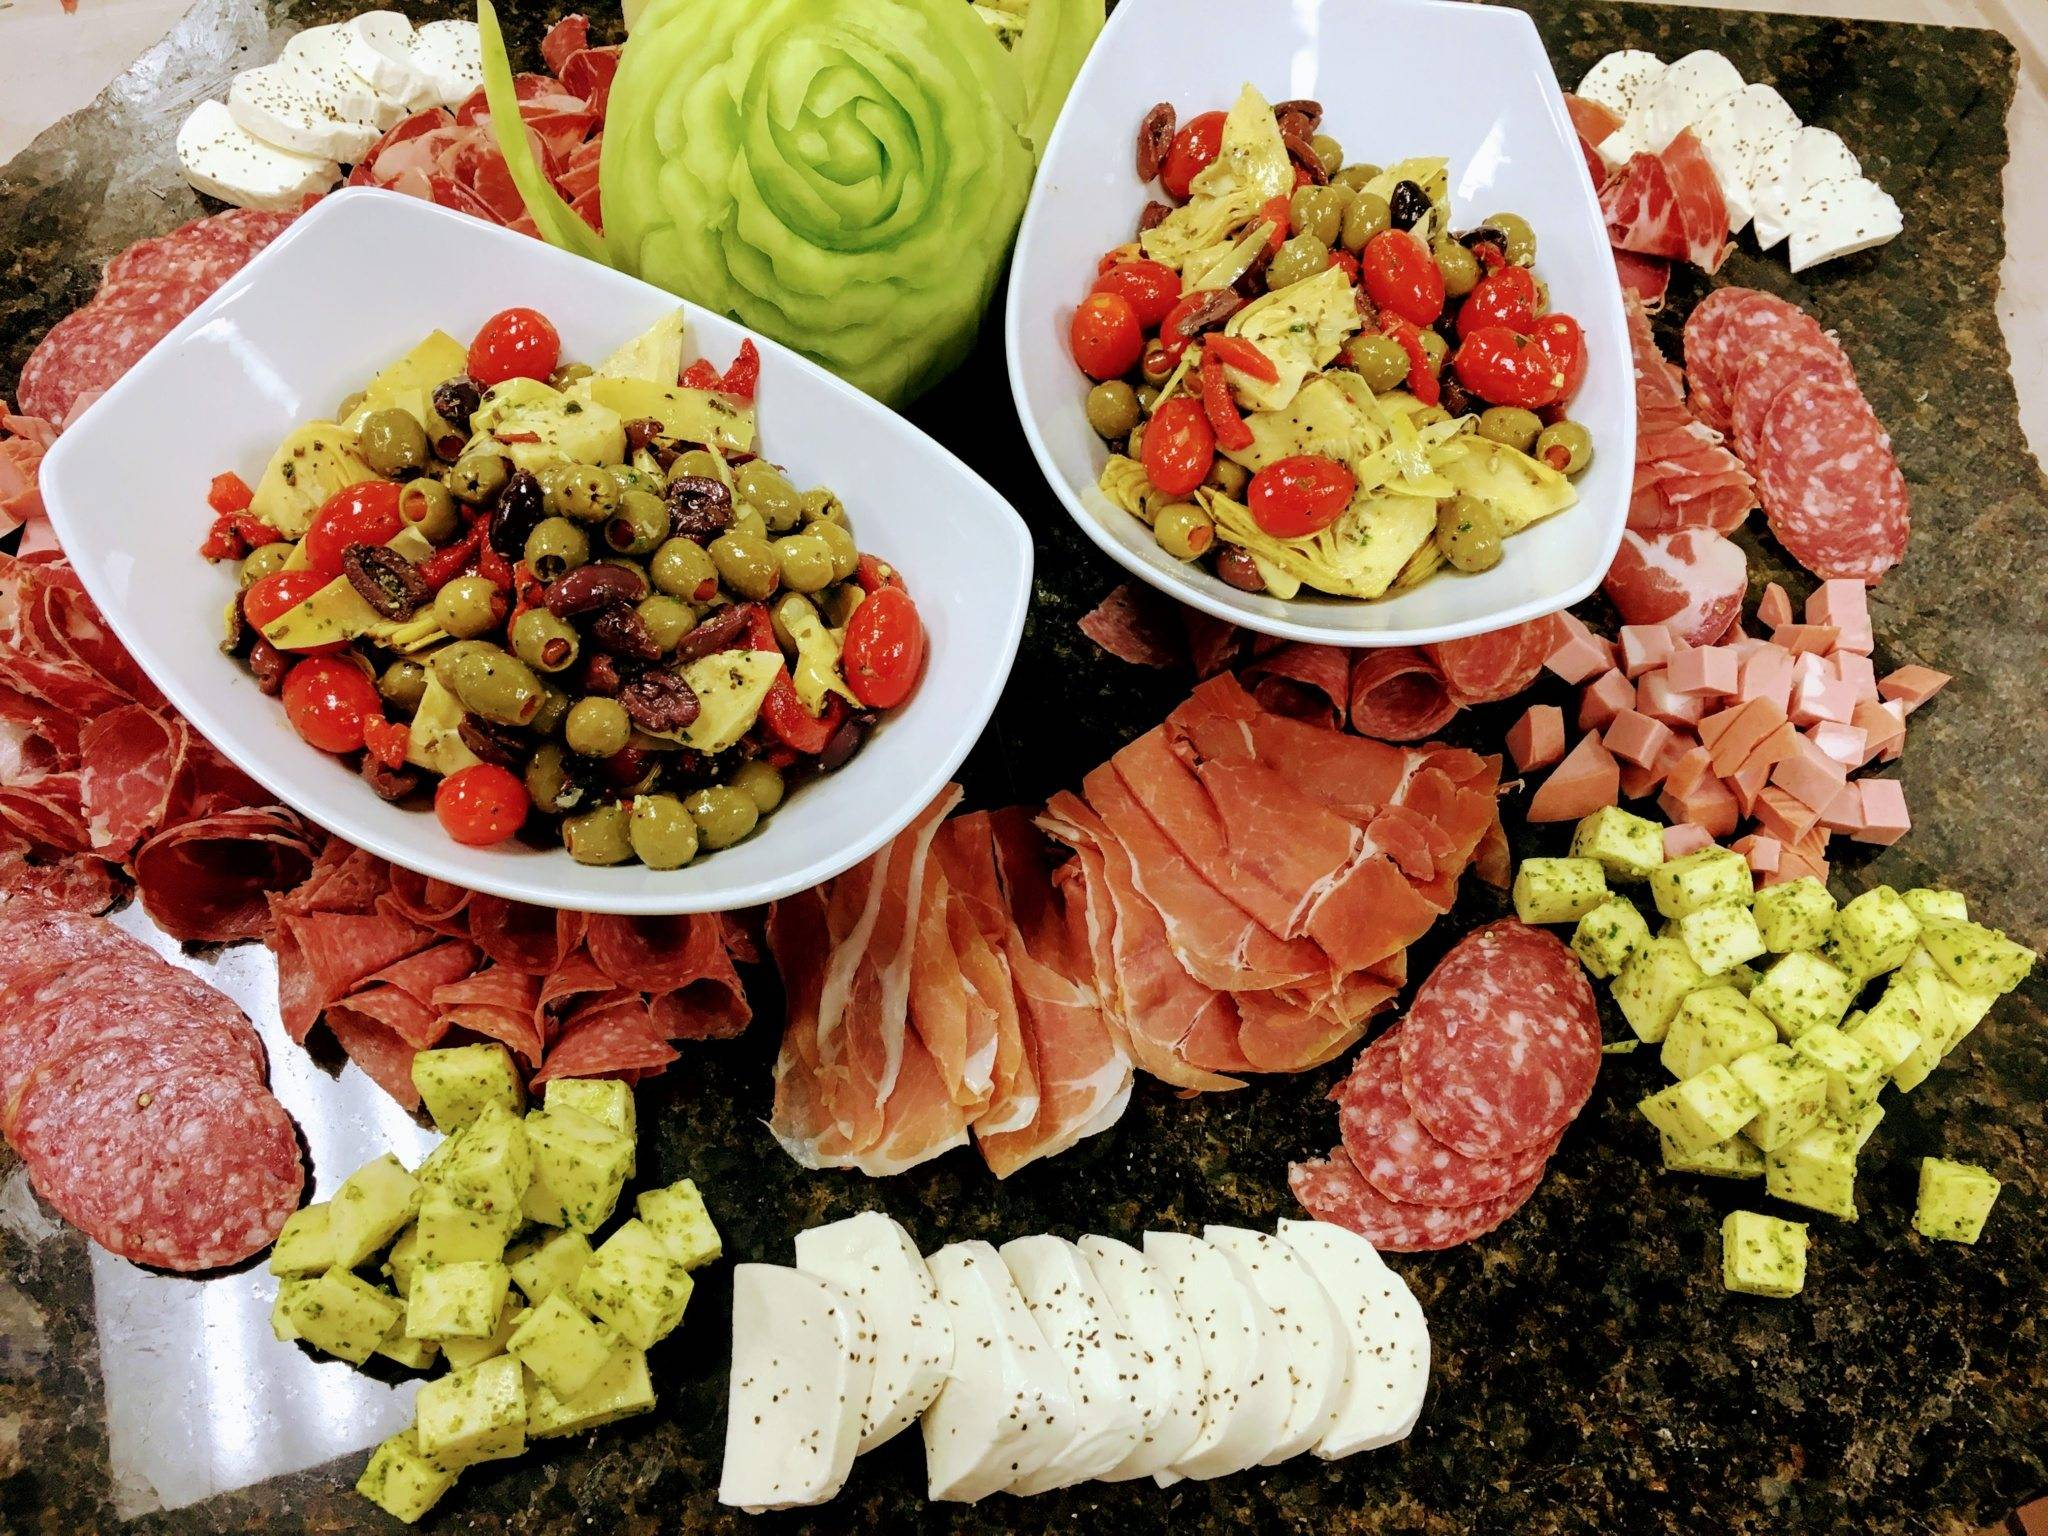 Cheese, Aged Sliced Italian Meats, artichokes, olives, peppers, on marble slab display